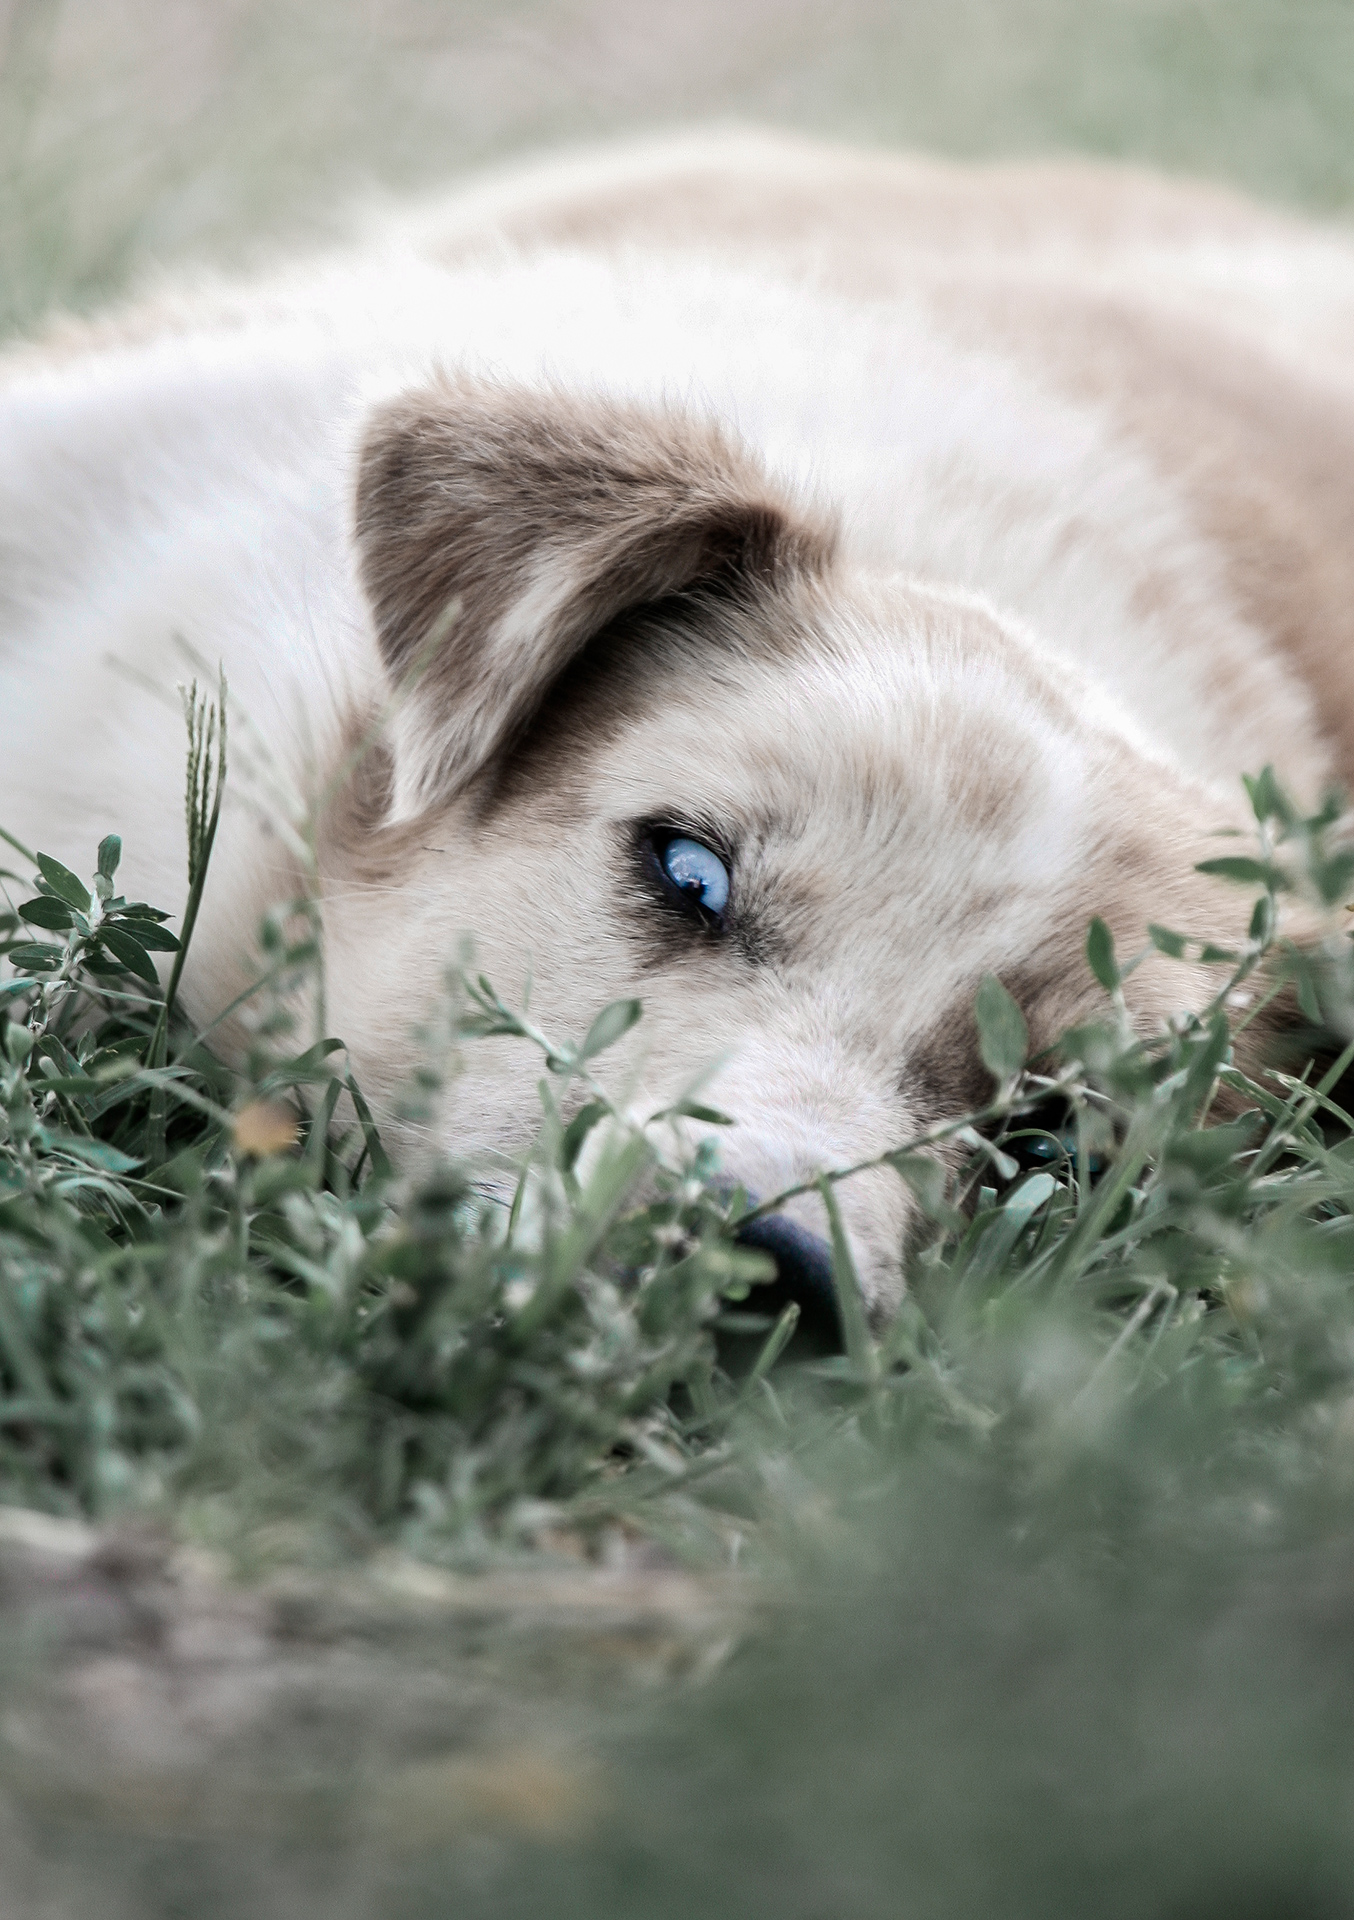 Stray dog, Kapchagay city, Kazakhstan, blue eyes, white dog, grass